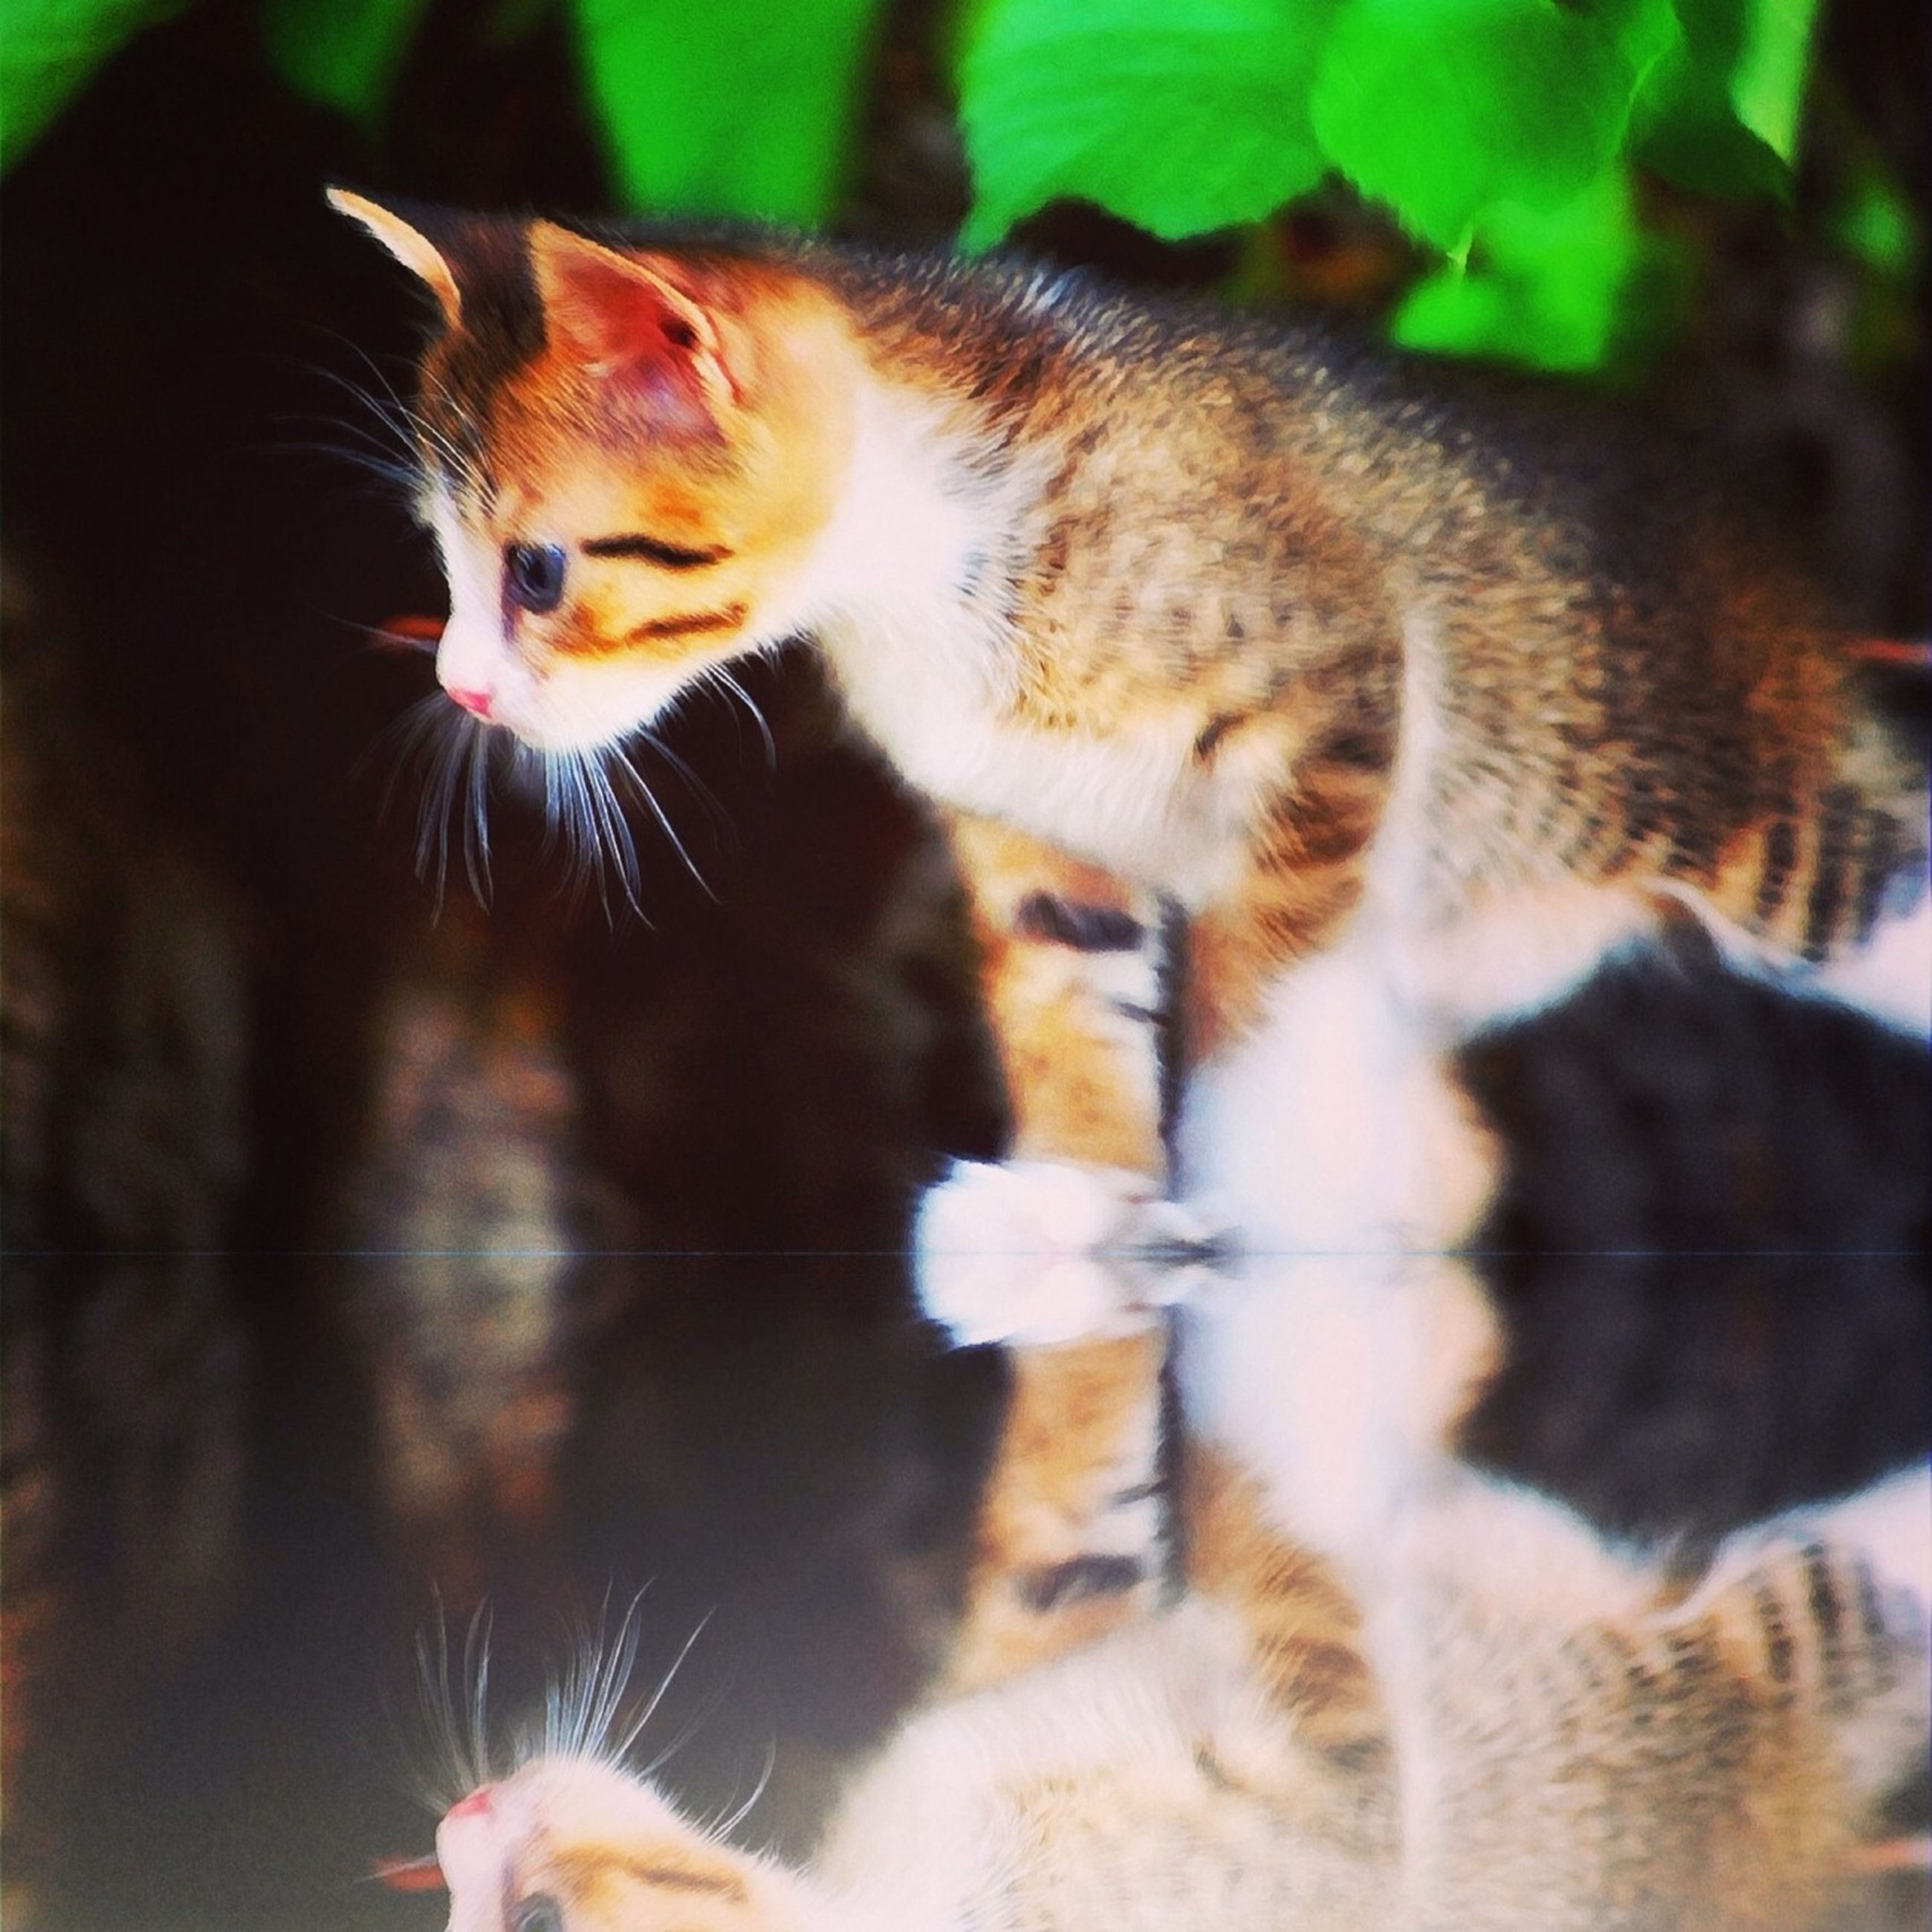 animal themes, domestic cat, one animal, mammal, feline, cat, pets, domestic animals, whisker, close-up, focus on foreground, selective focus, portrait, kitten, looking at camera, sitting, two animals, young animal, no people